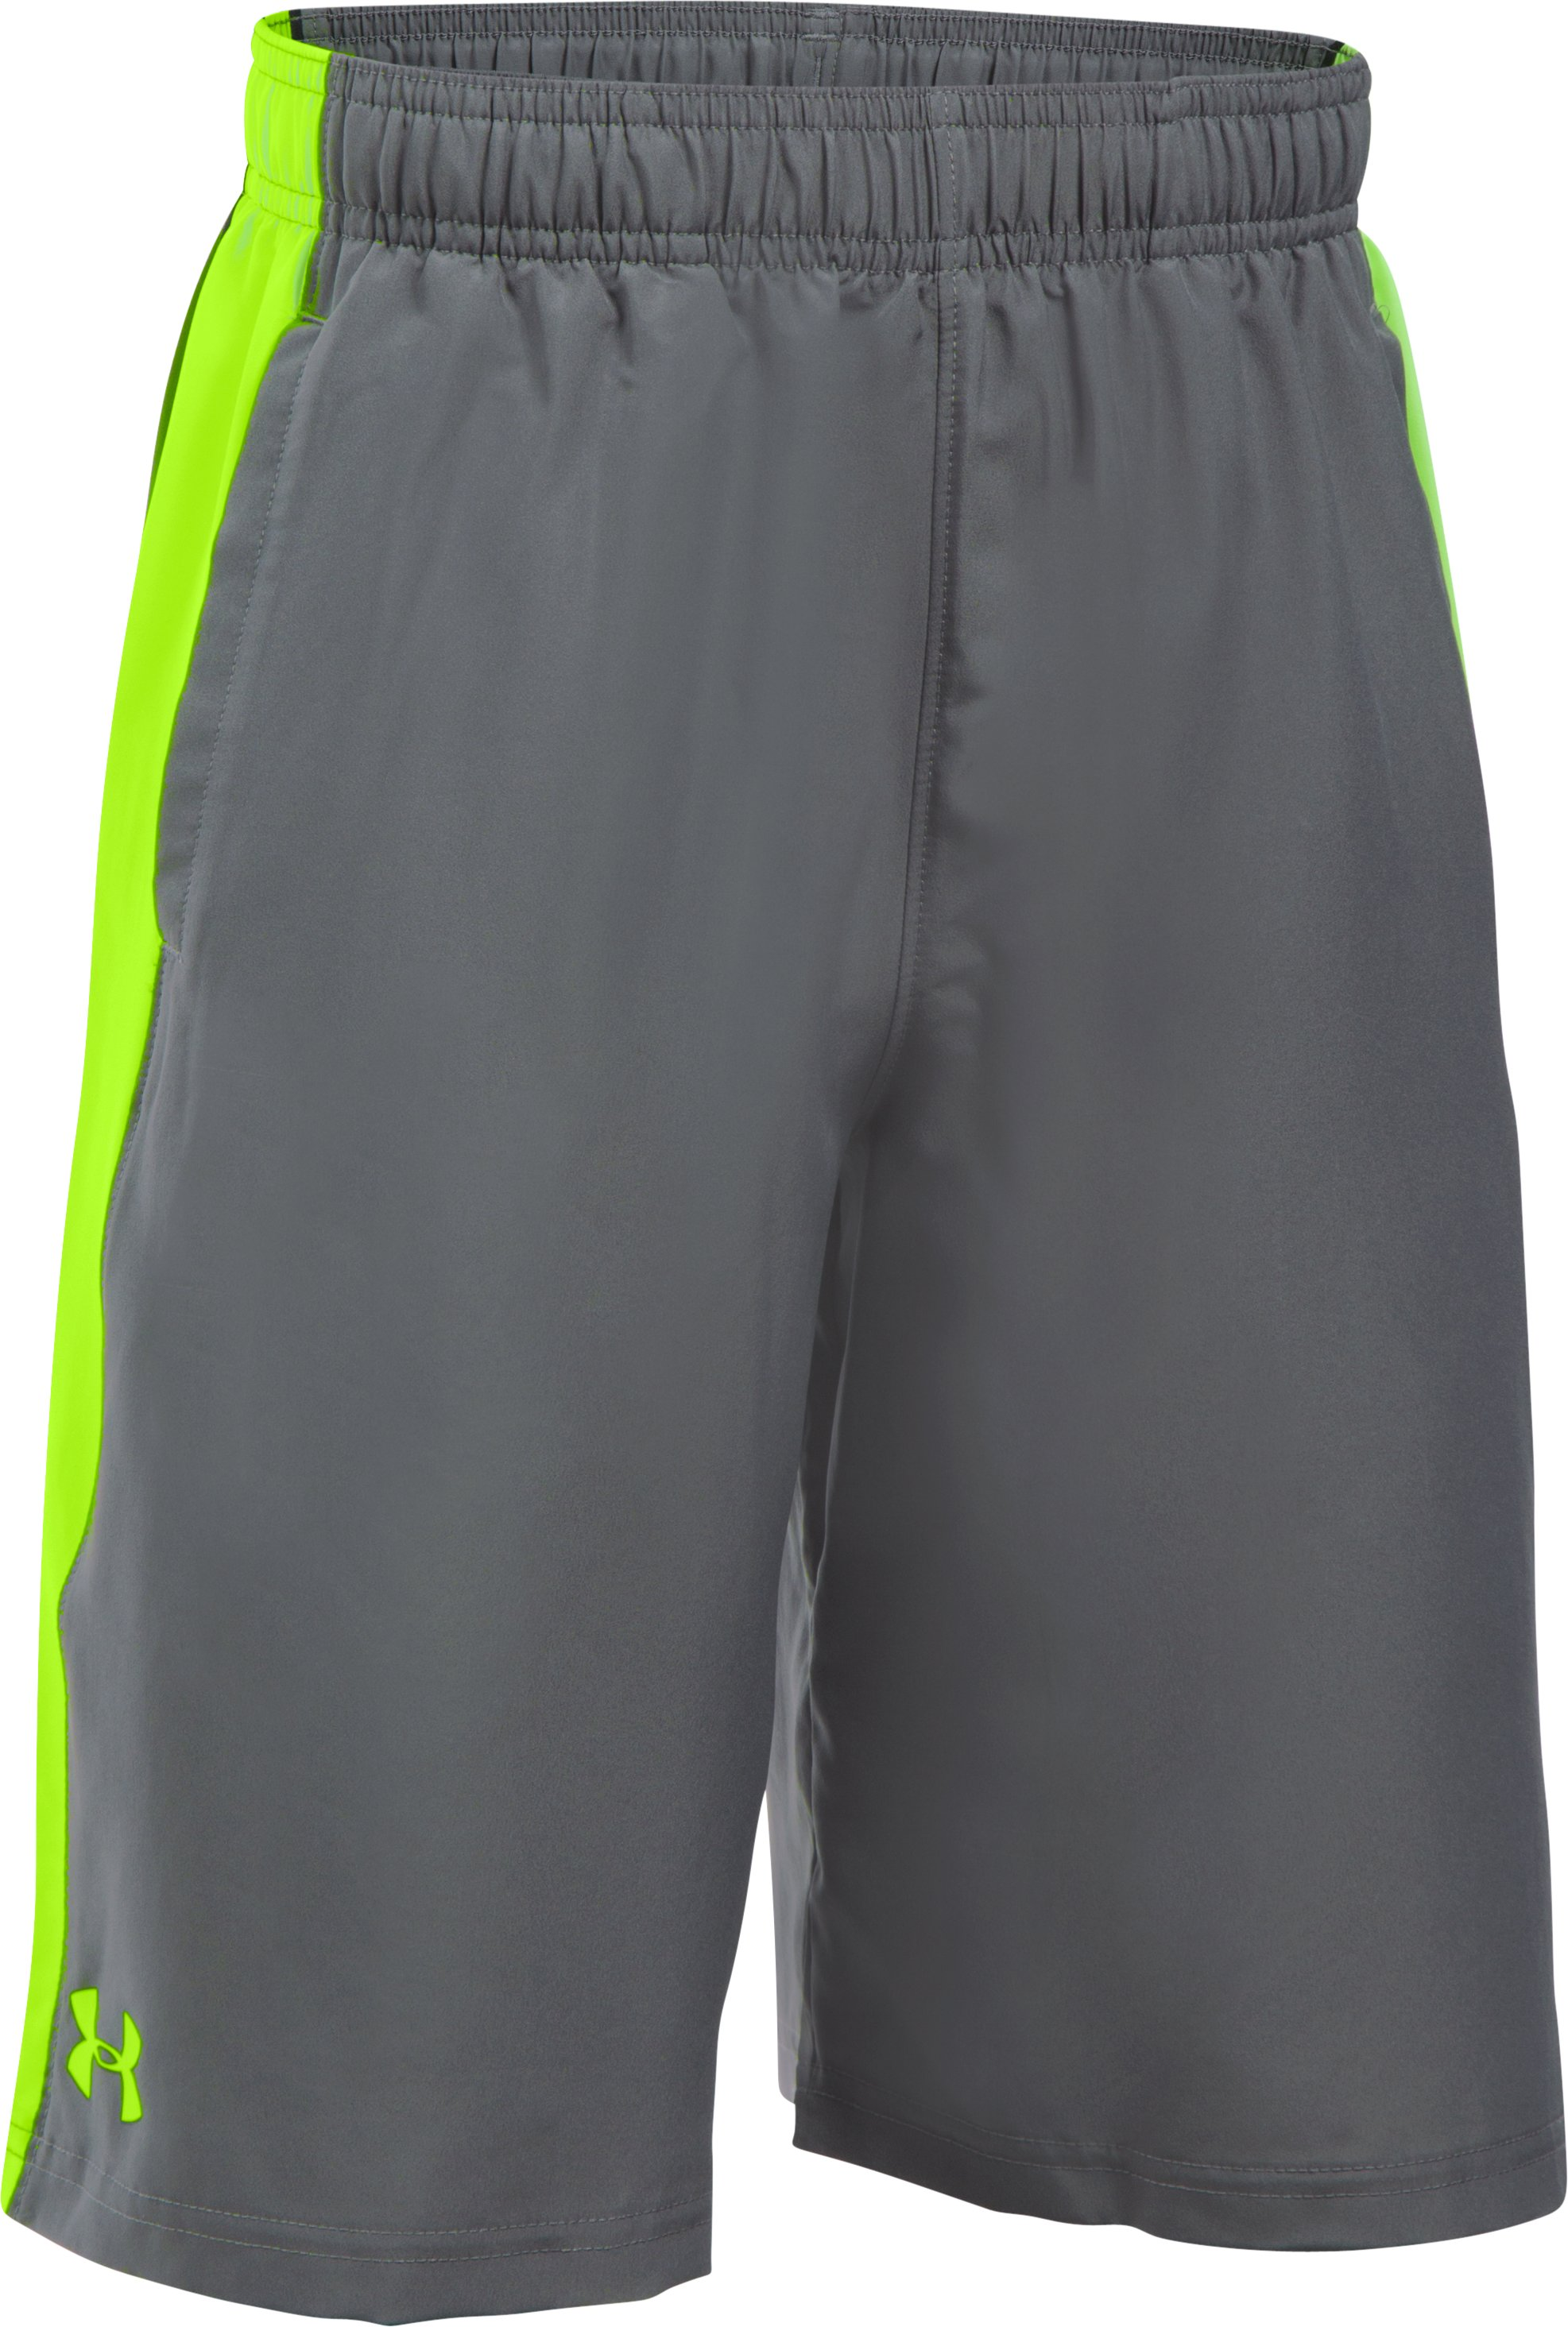 Boys' UA Impulse Woven Shorts, Graphite, undefined